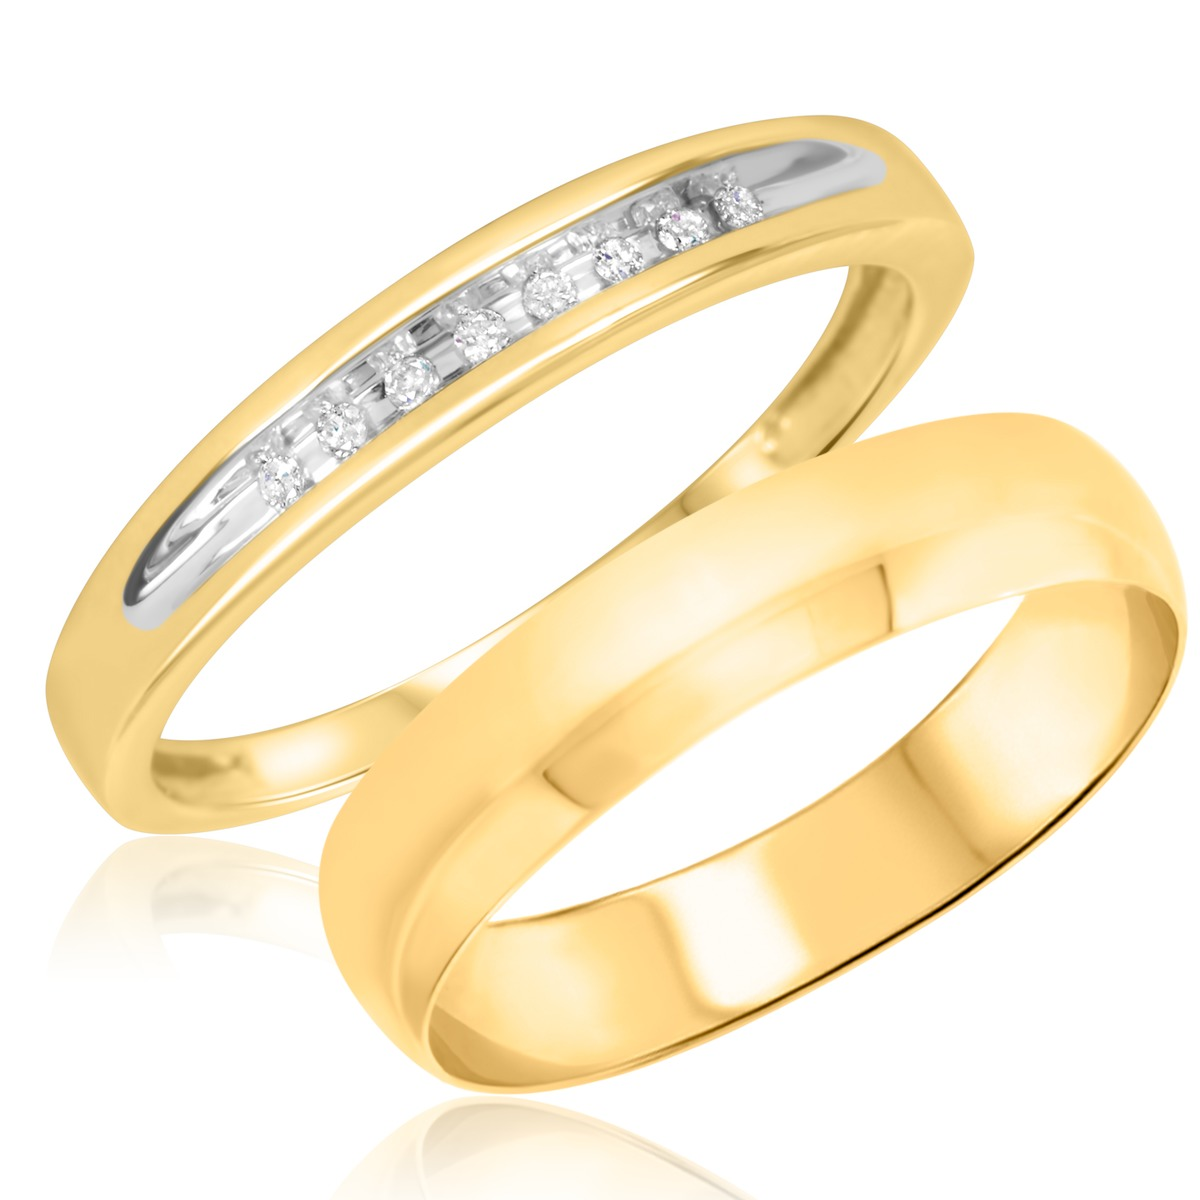 1/20 Carat T.W. Round Cut Diamond His and Hers Wedding Band Set 14K Yellow Gold